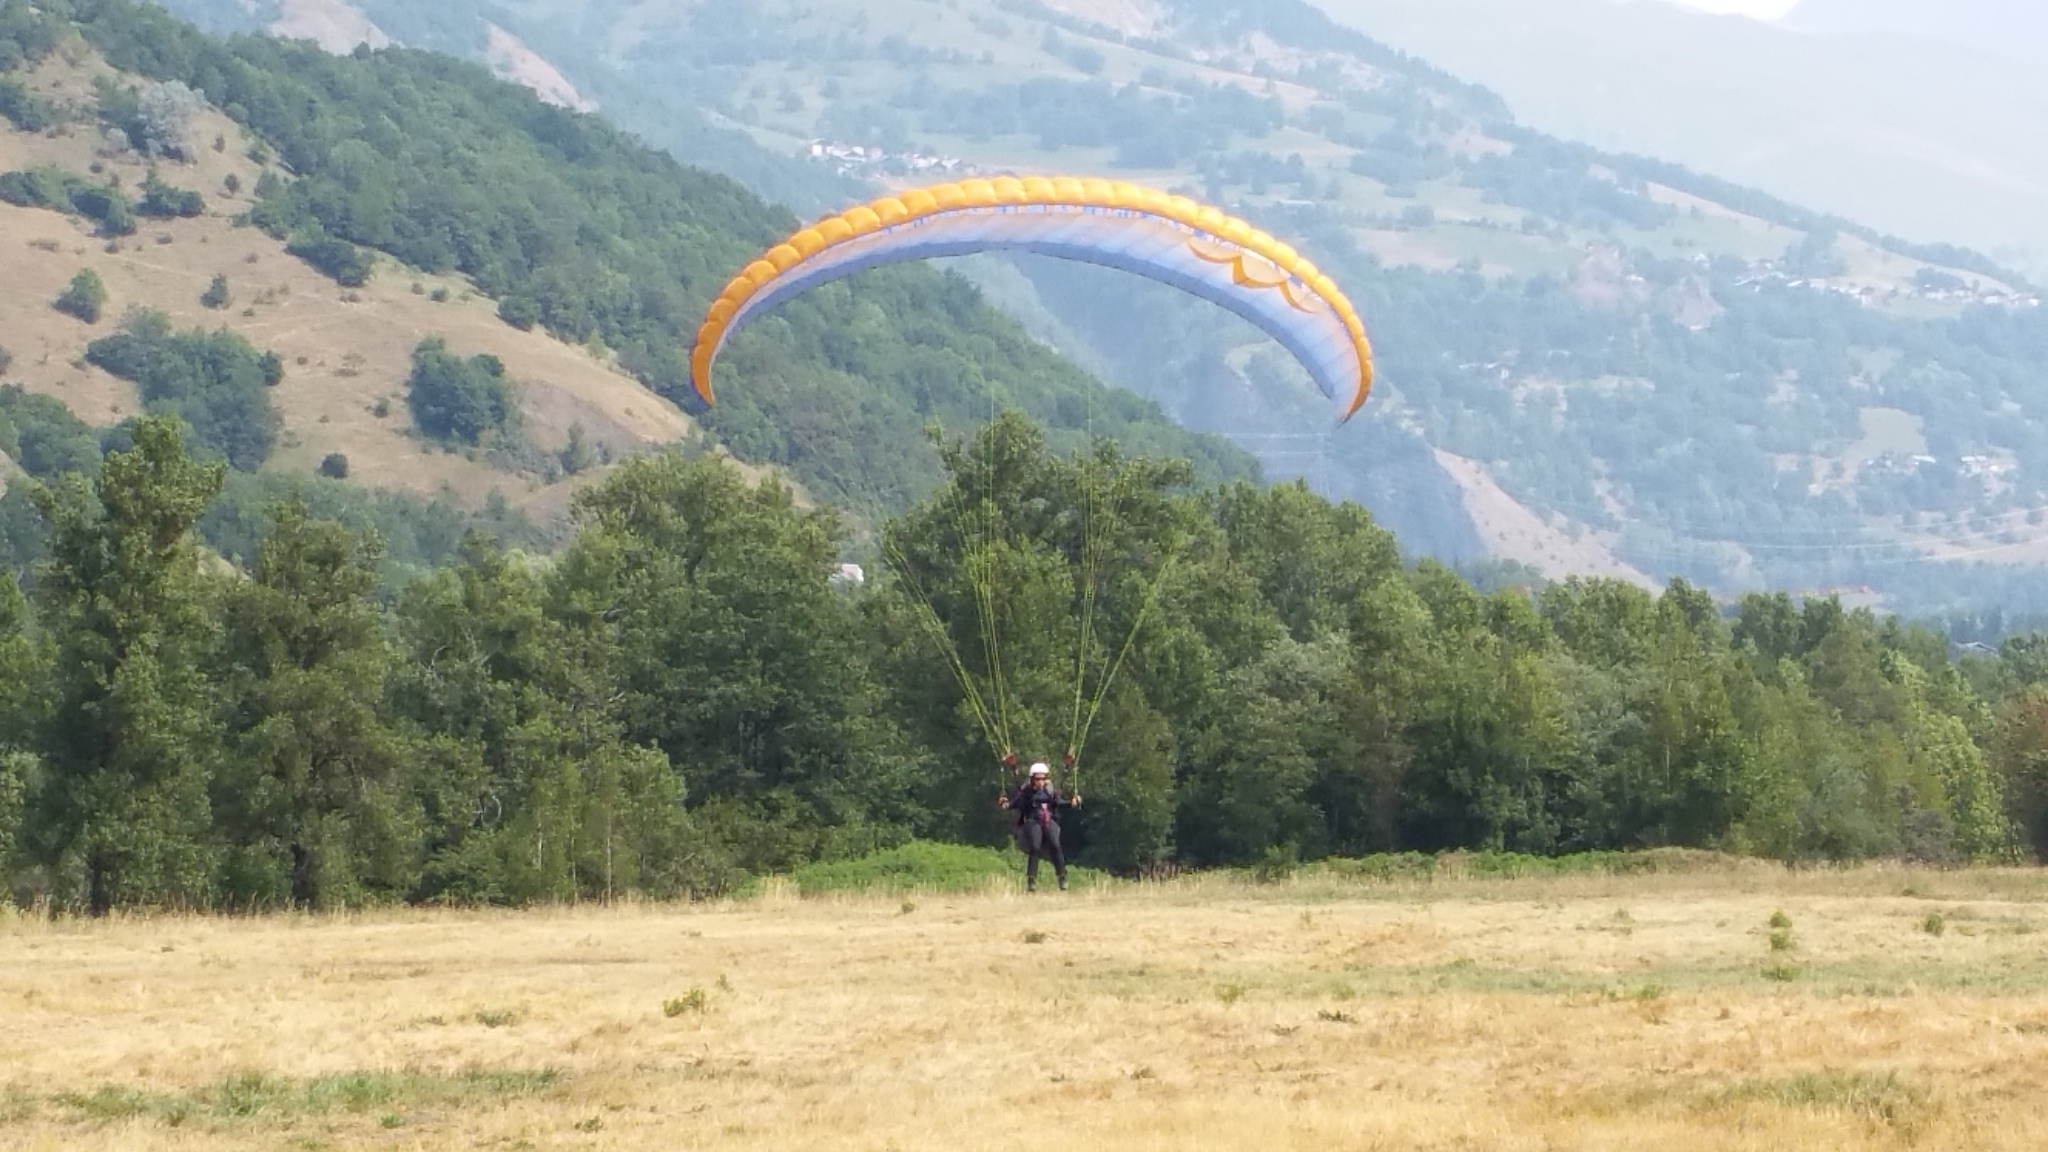 Unbelievable July month for paragliding. 6